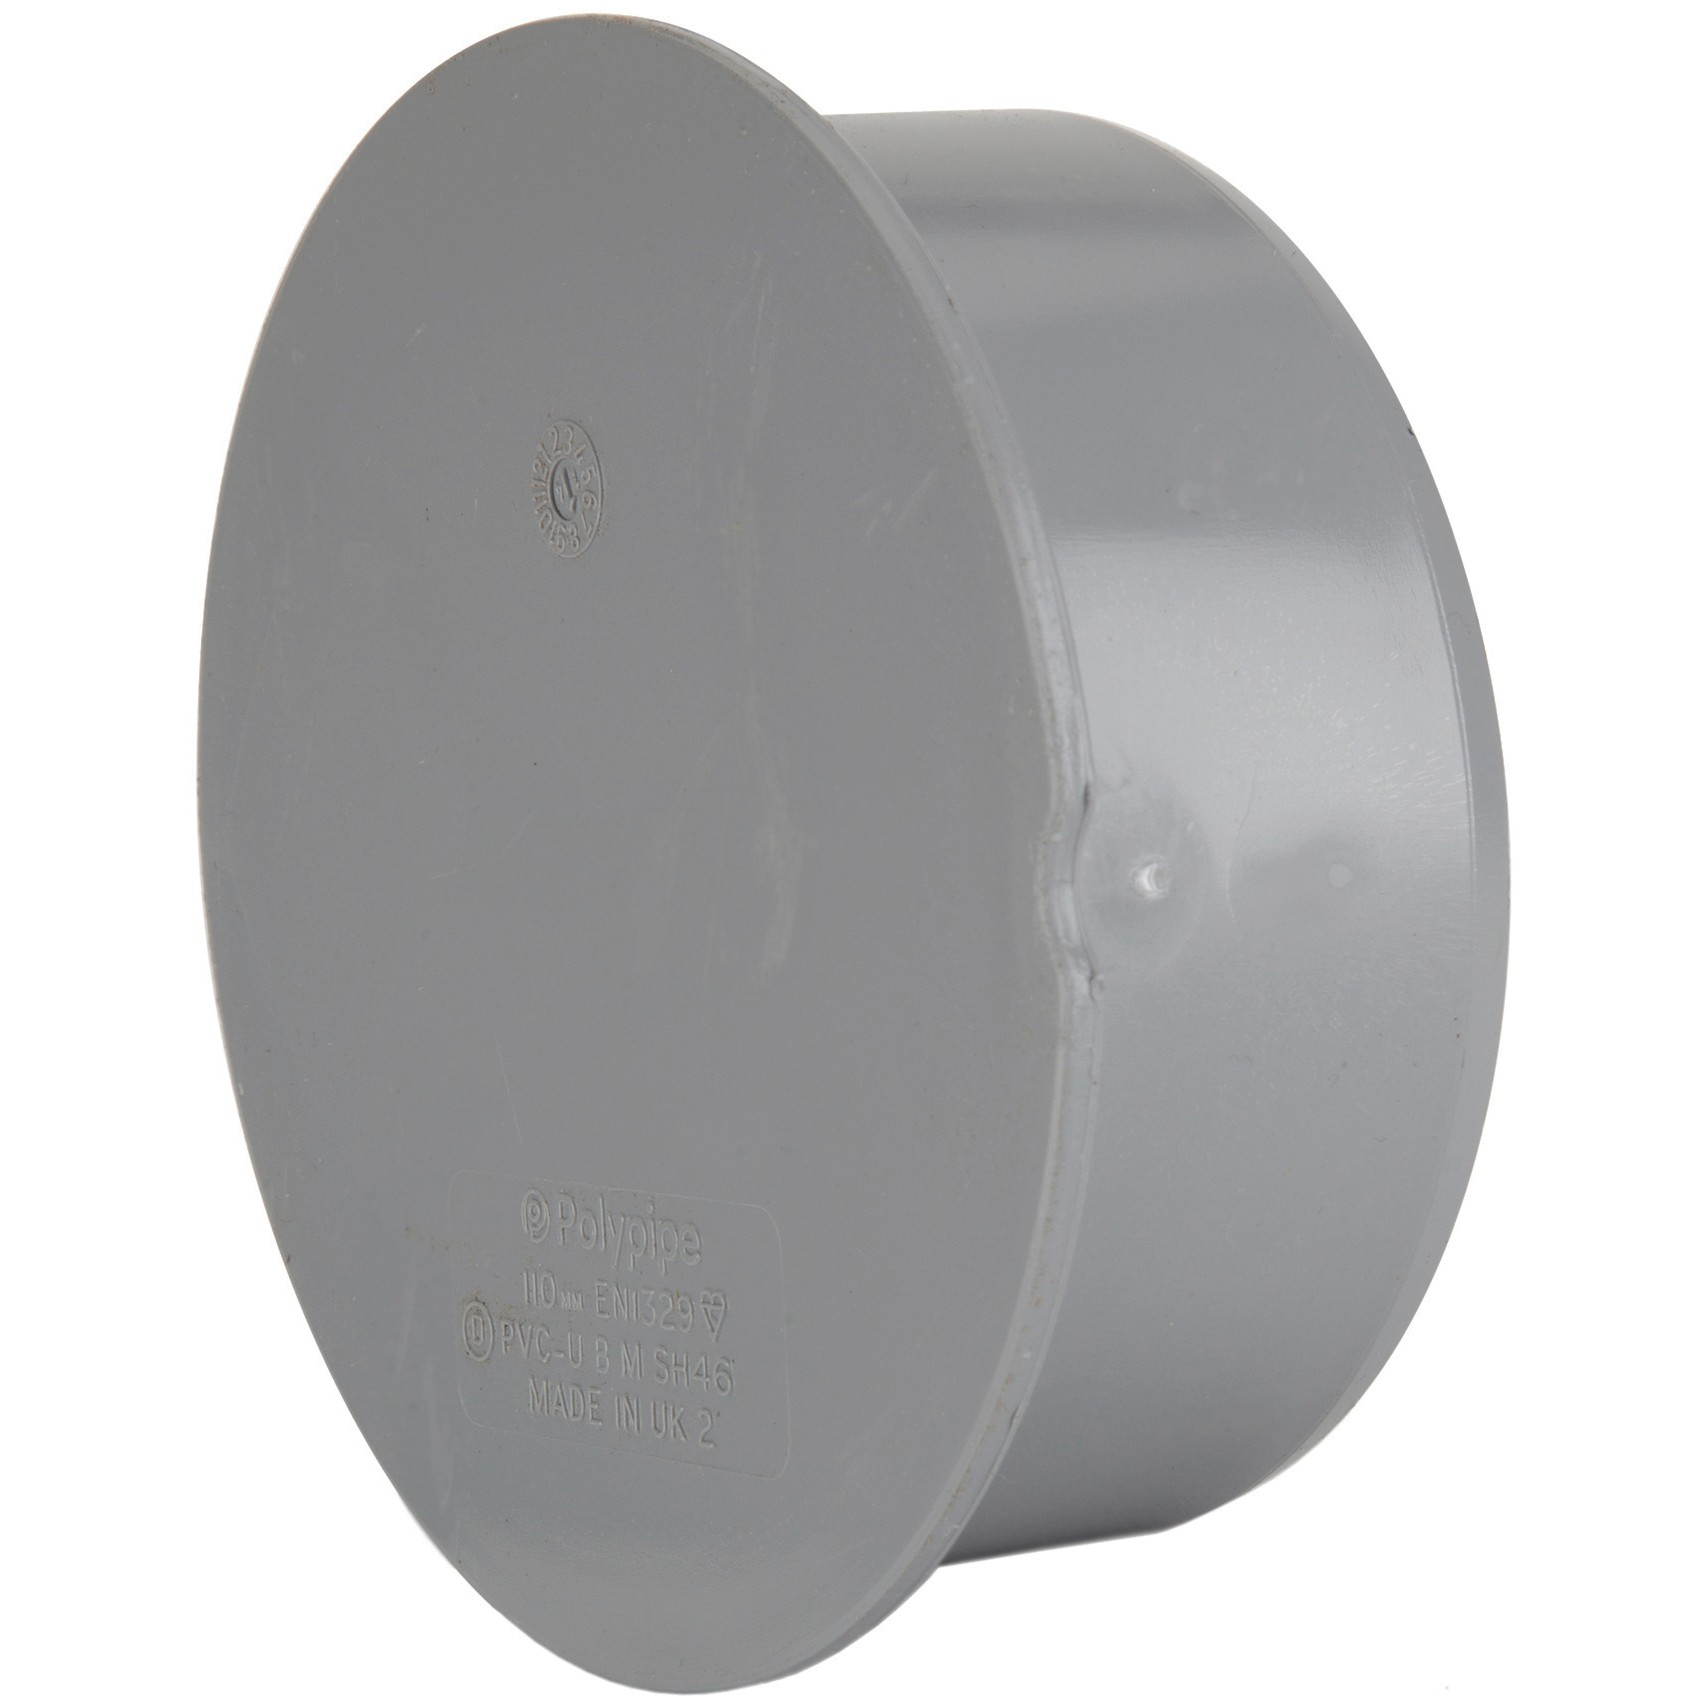 Polypipe 110mm Soil Socket Plug - Grey